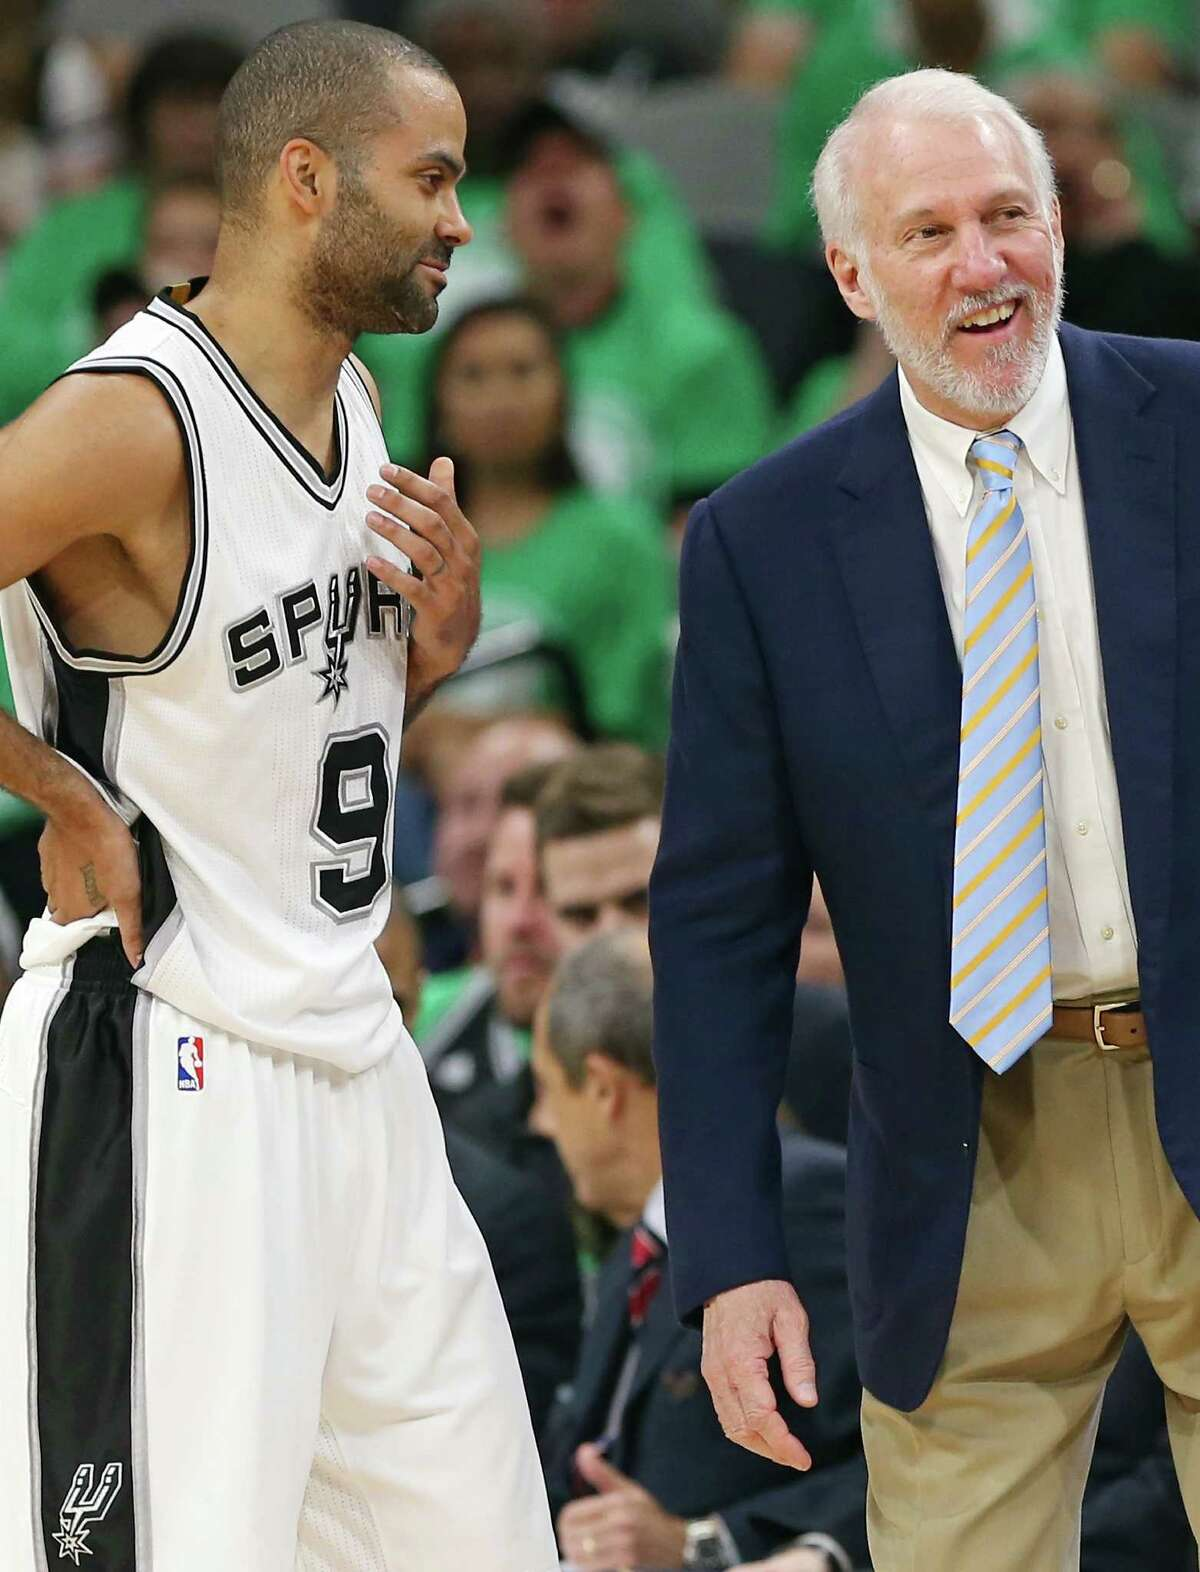 San Antonio Spurs' Tony Parker talks with head coach Gregg Popovich during second half action against the Portland Trail Blazers Thursday March 17, 2016 at the AT&T Center. The Spurs won 118-110.